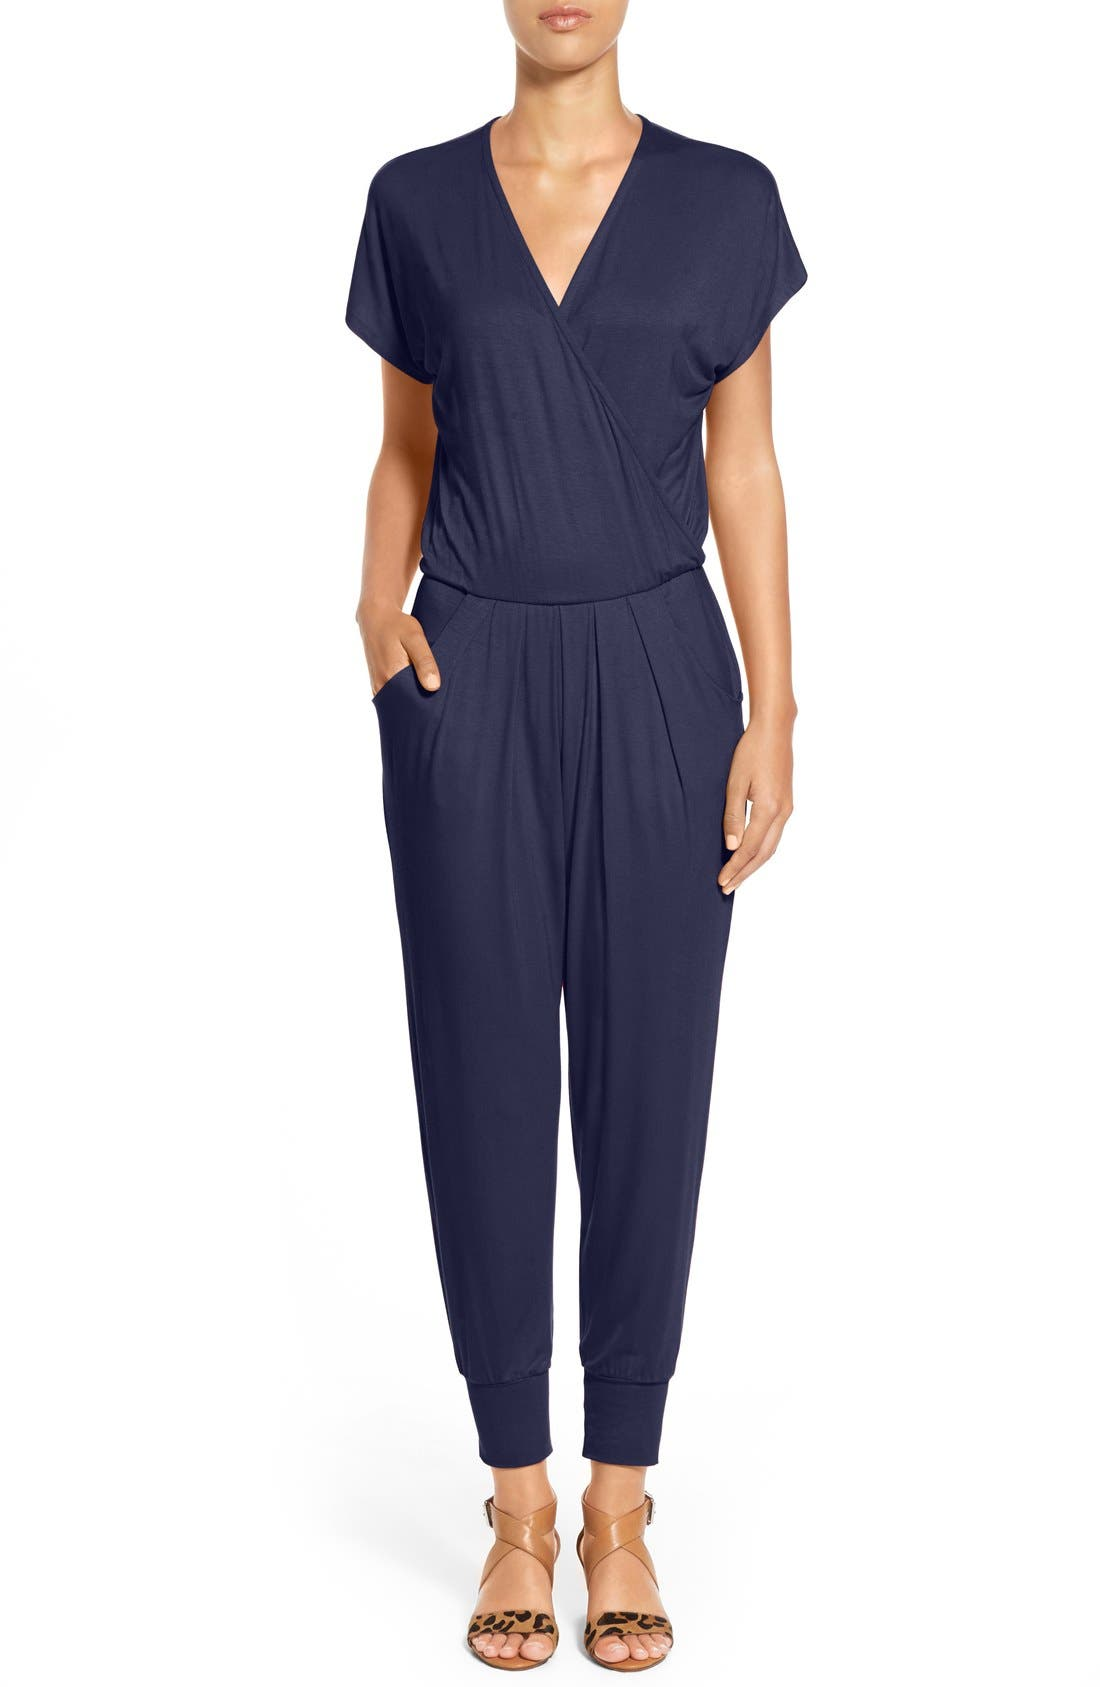 Loveappella Short Sleeve Wrap Top Jumpsuit (Regular & Petite)